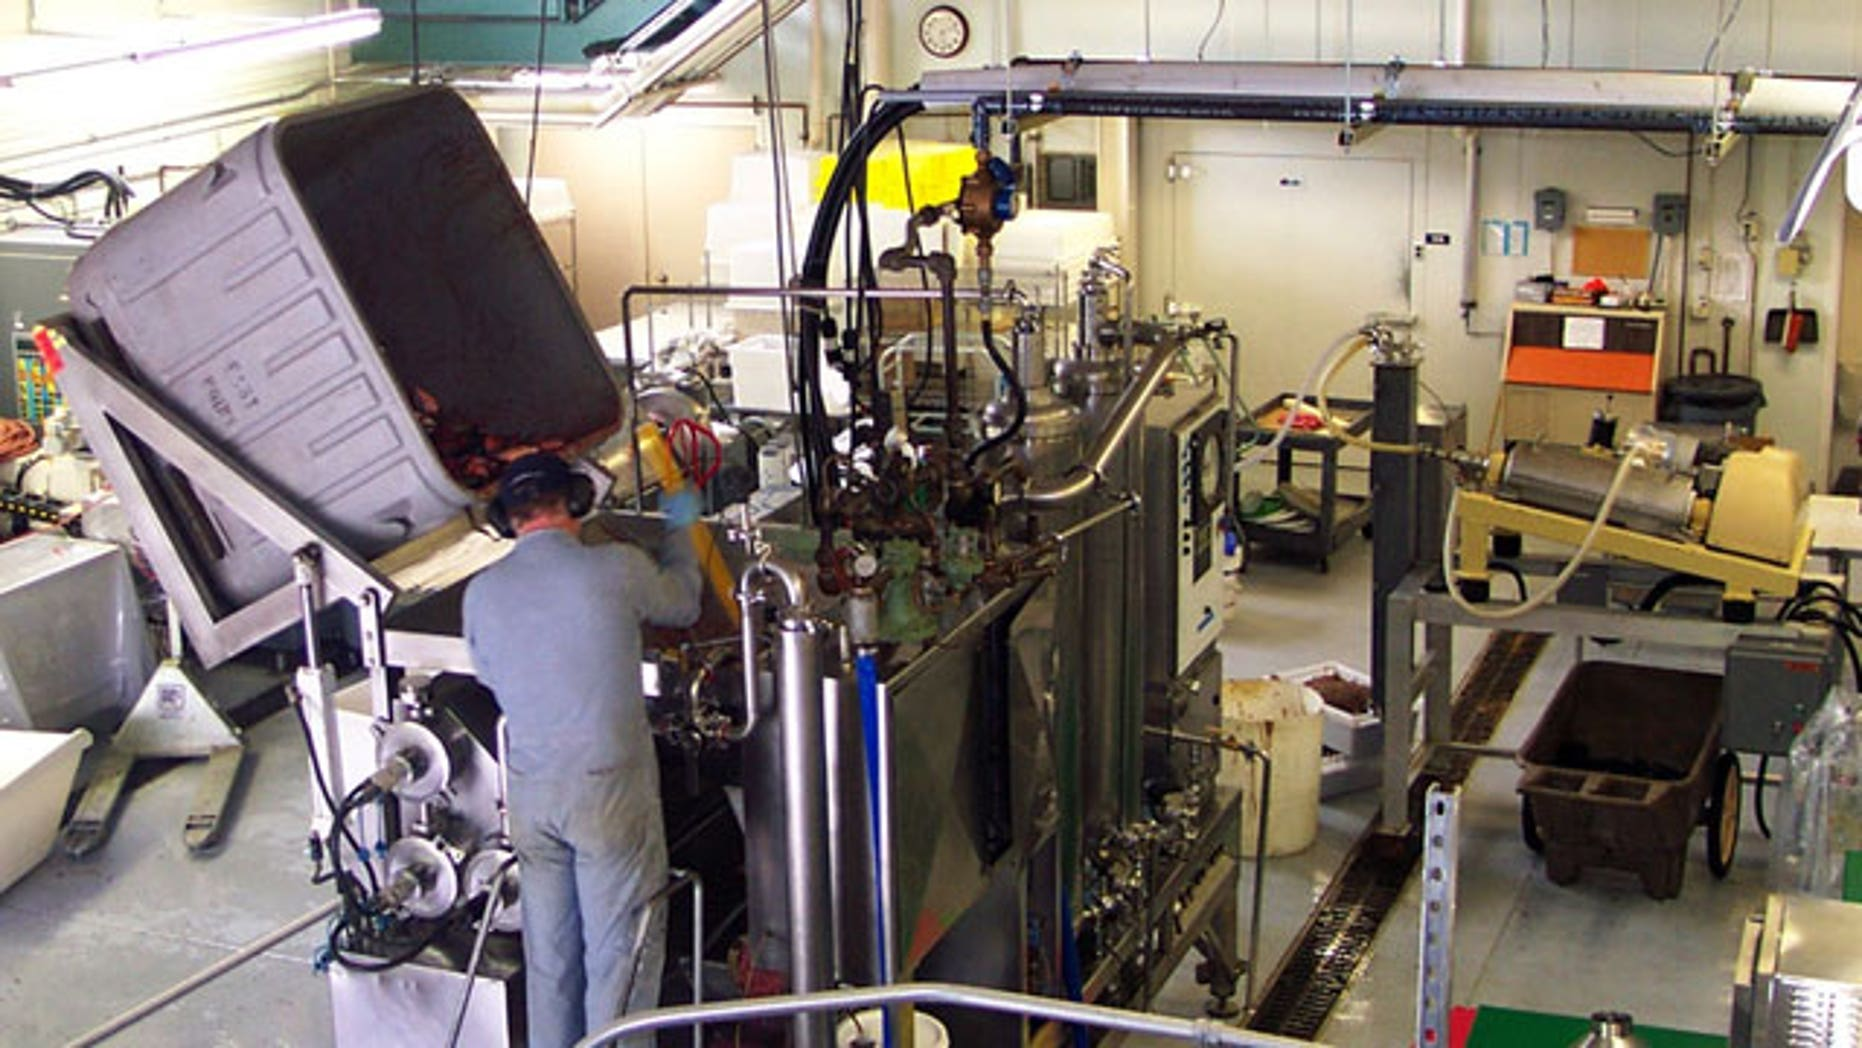 FILE: A technician dumps seafood byproducts into a hydrolysis machine at the Fishery Industrial Technology Center in Kodiak, Alaska.